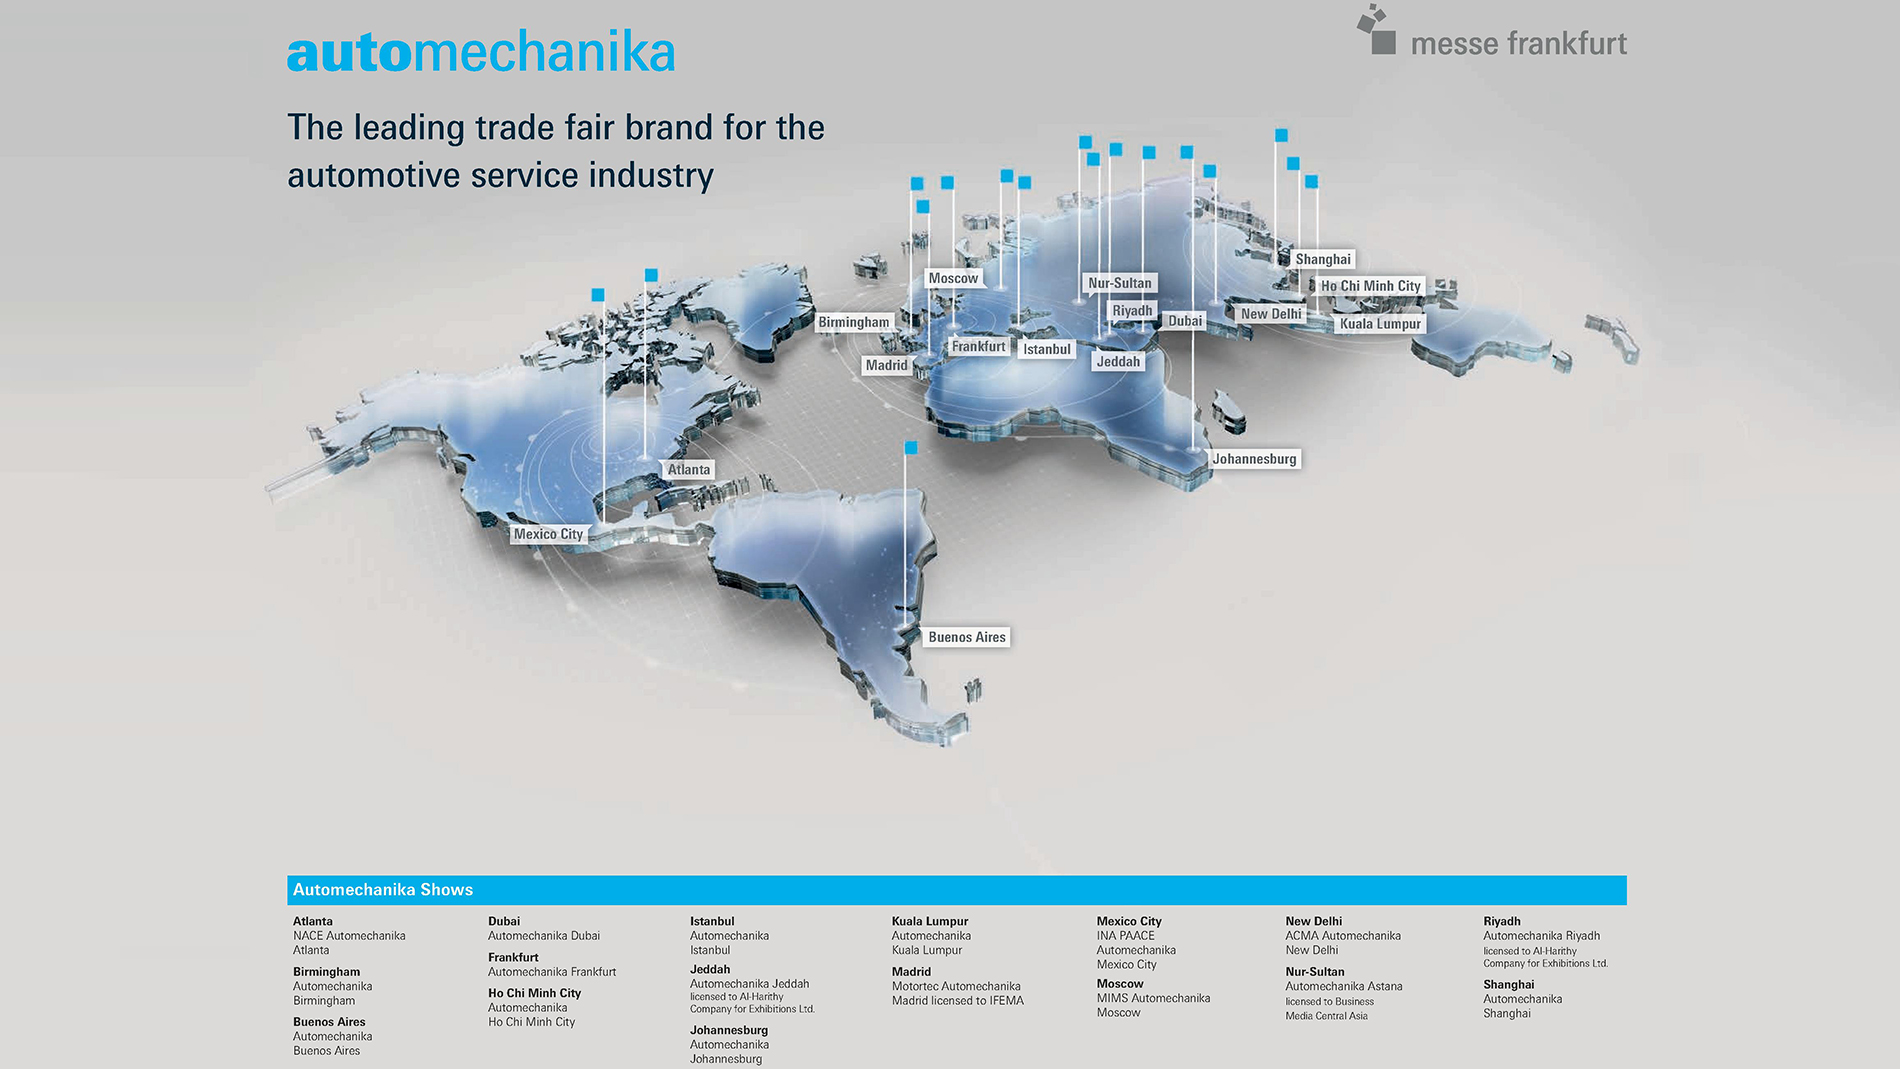 Automechanika Worldwide